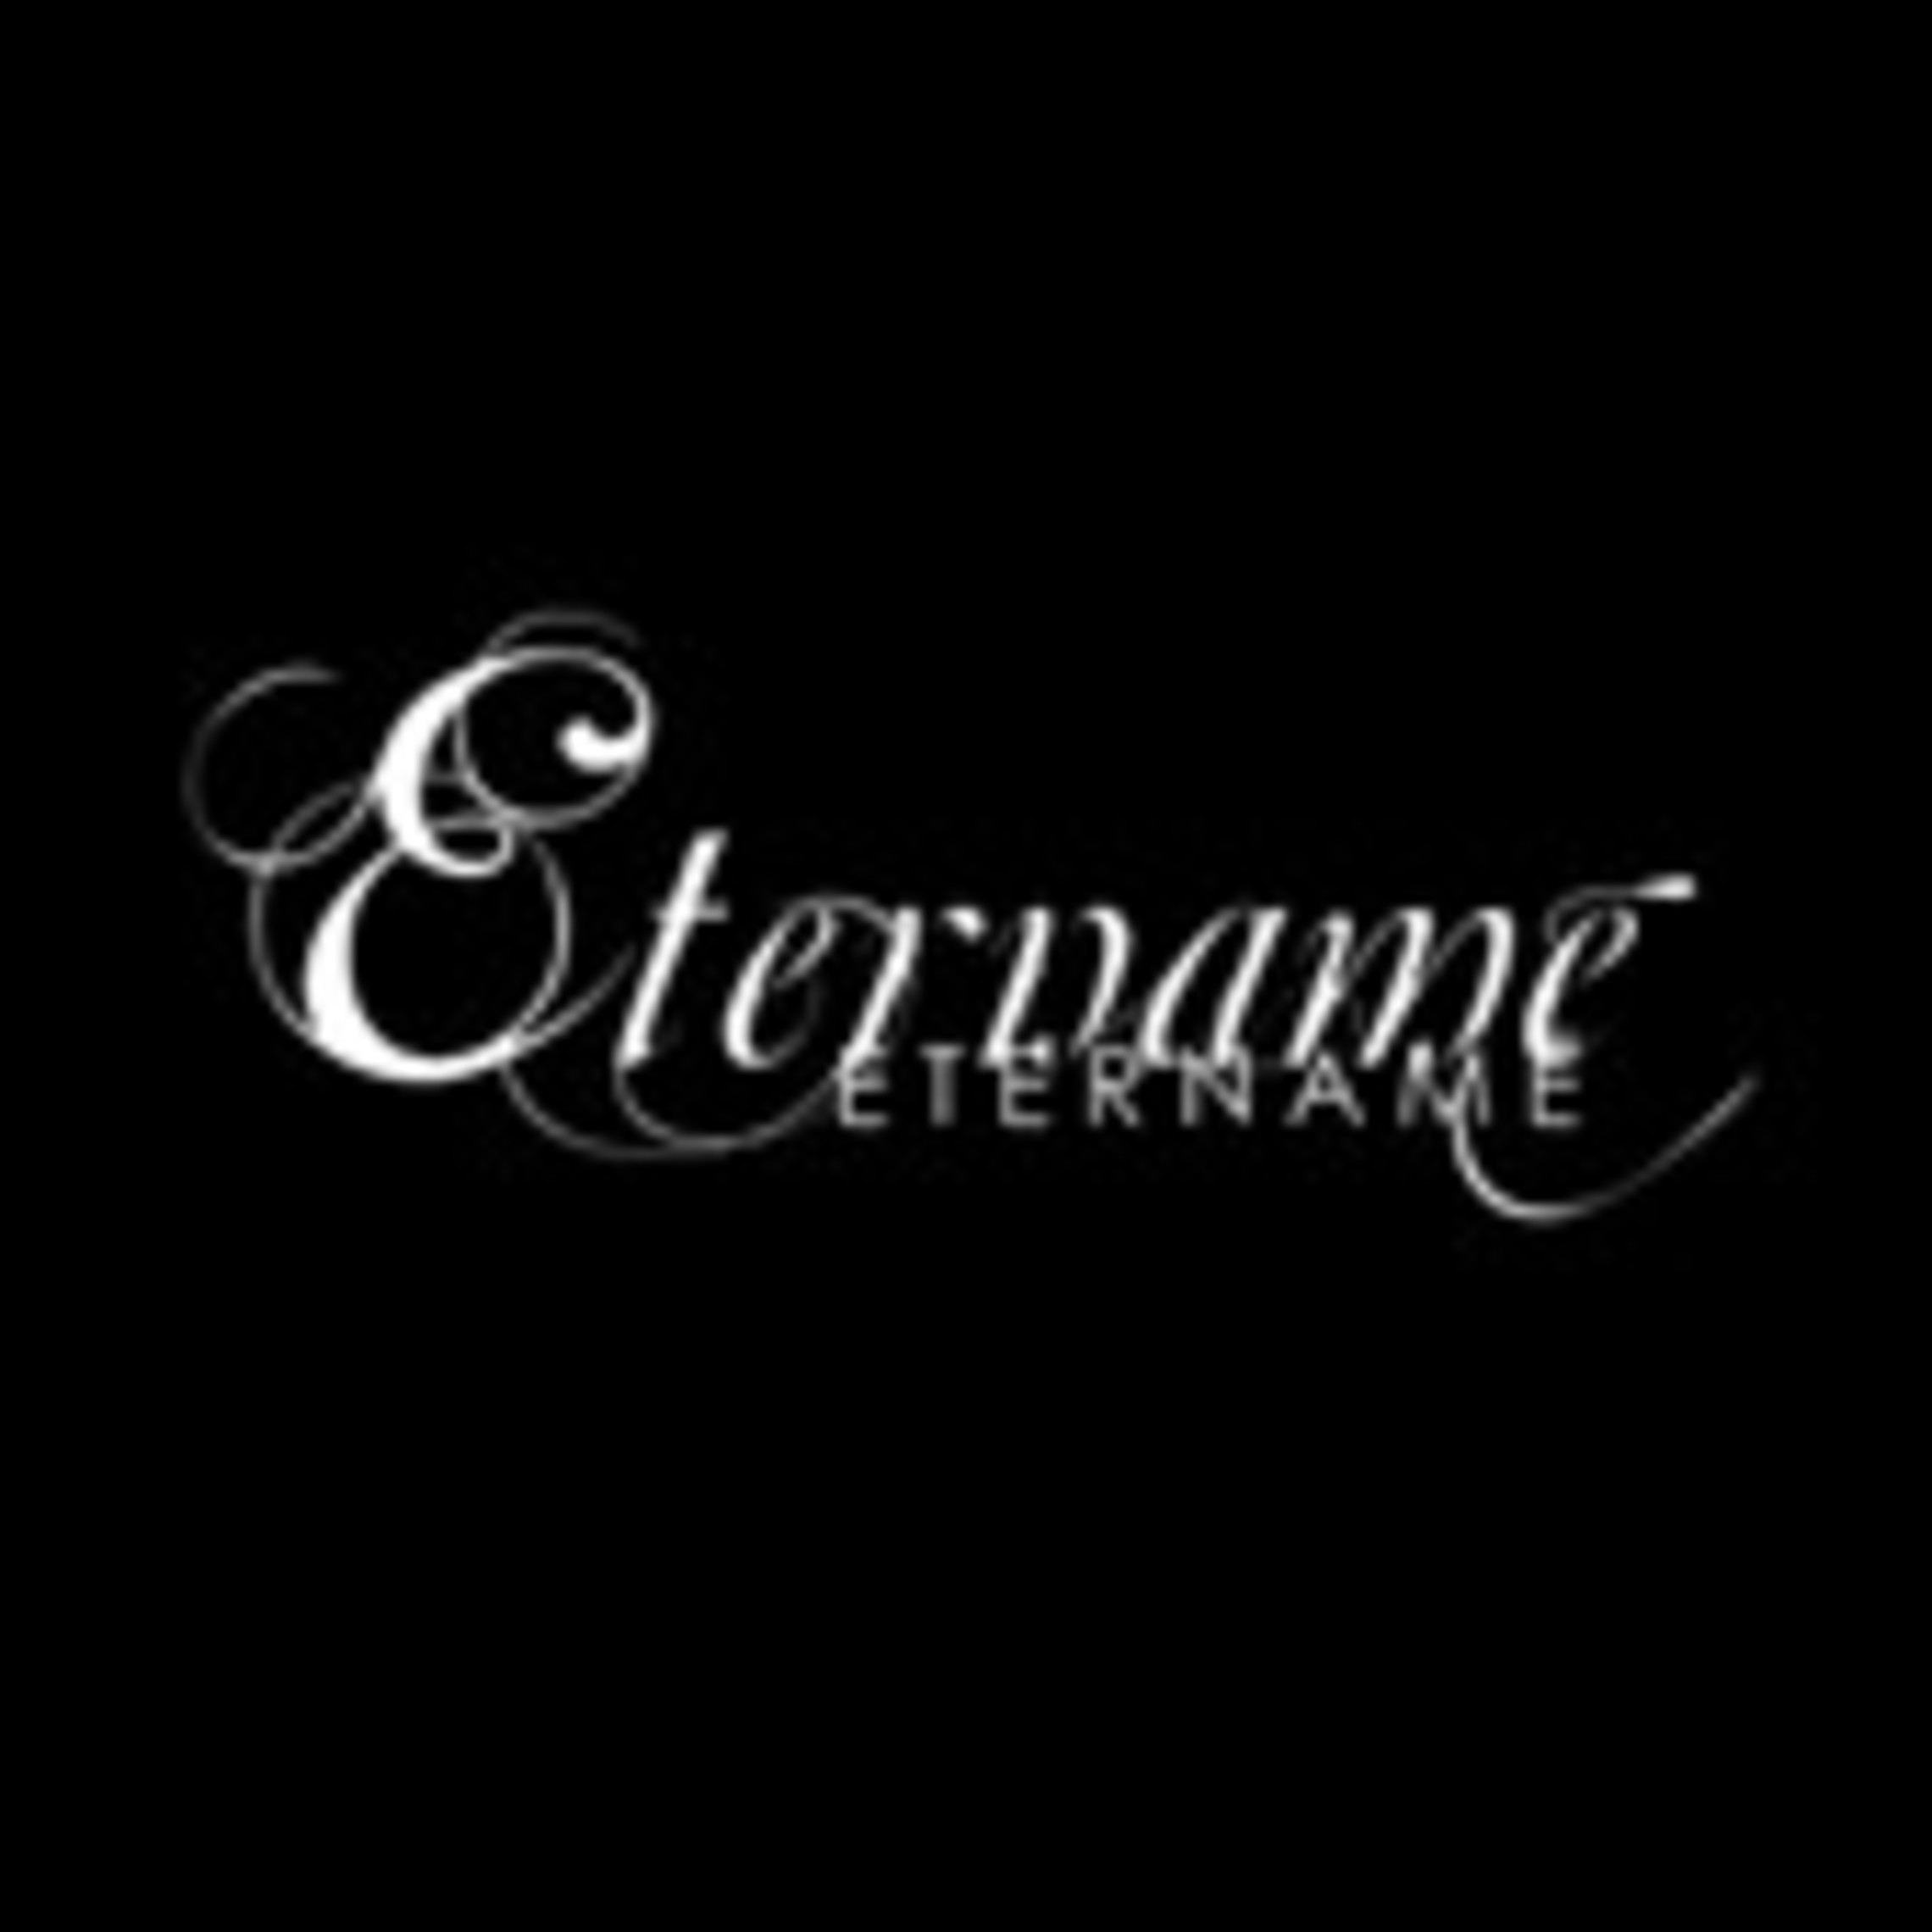 etername french luxury- company logo